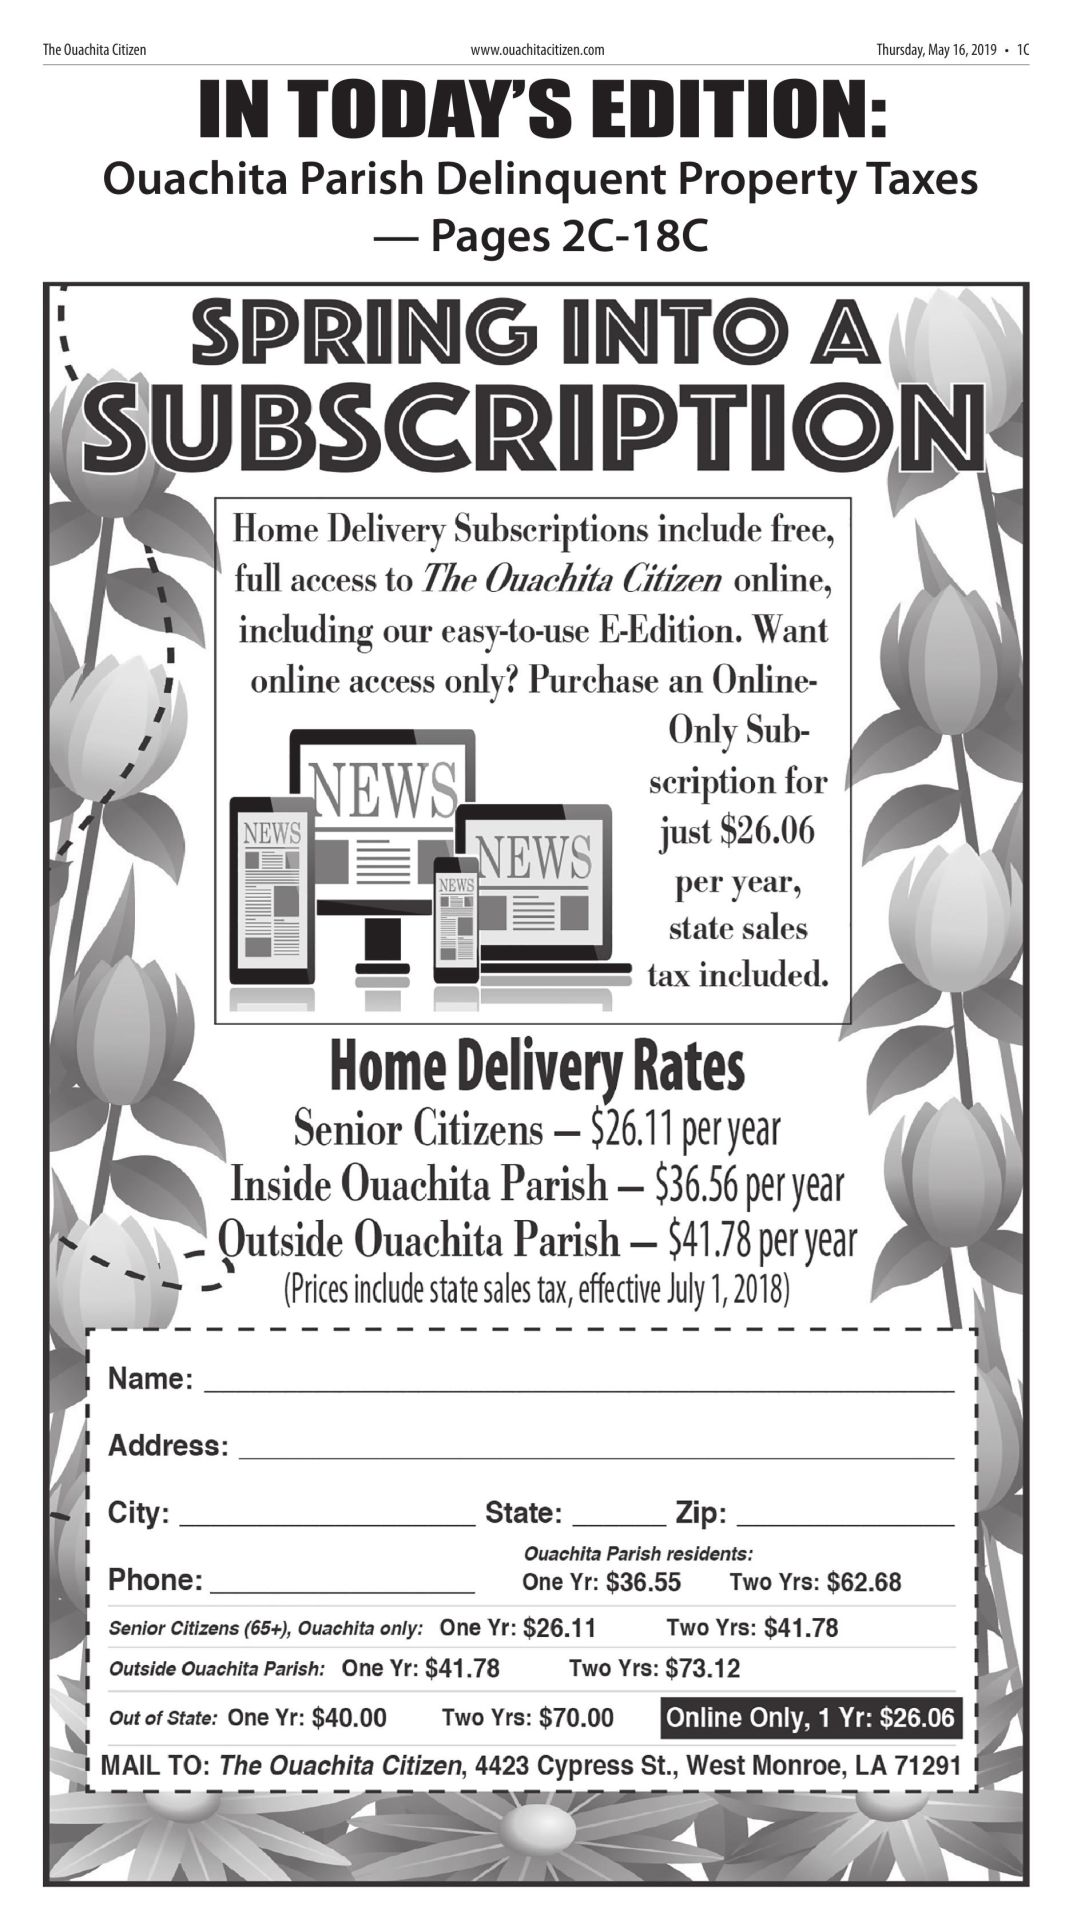 May 16, 2019 Ouachita Parish Delinquent Property Taxes, click to download pages